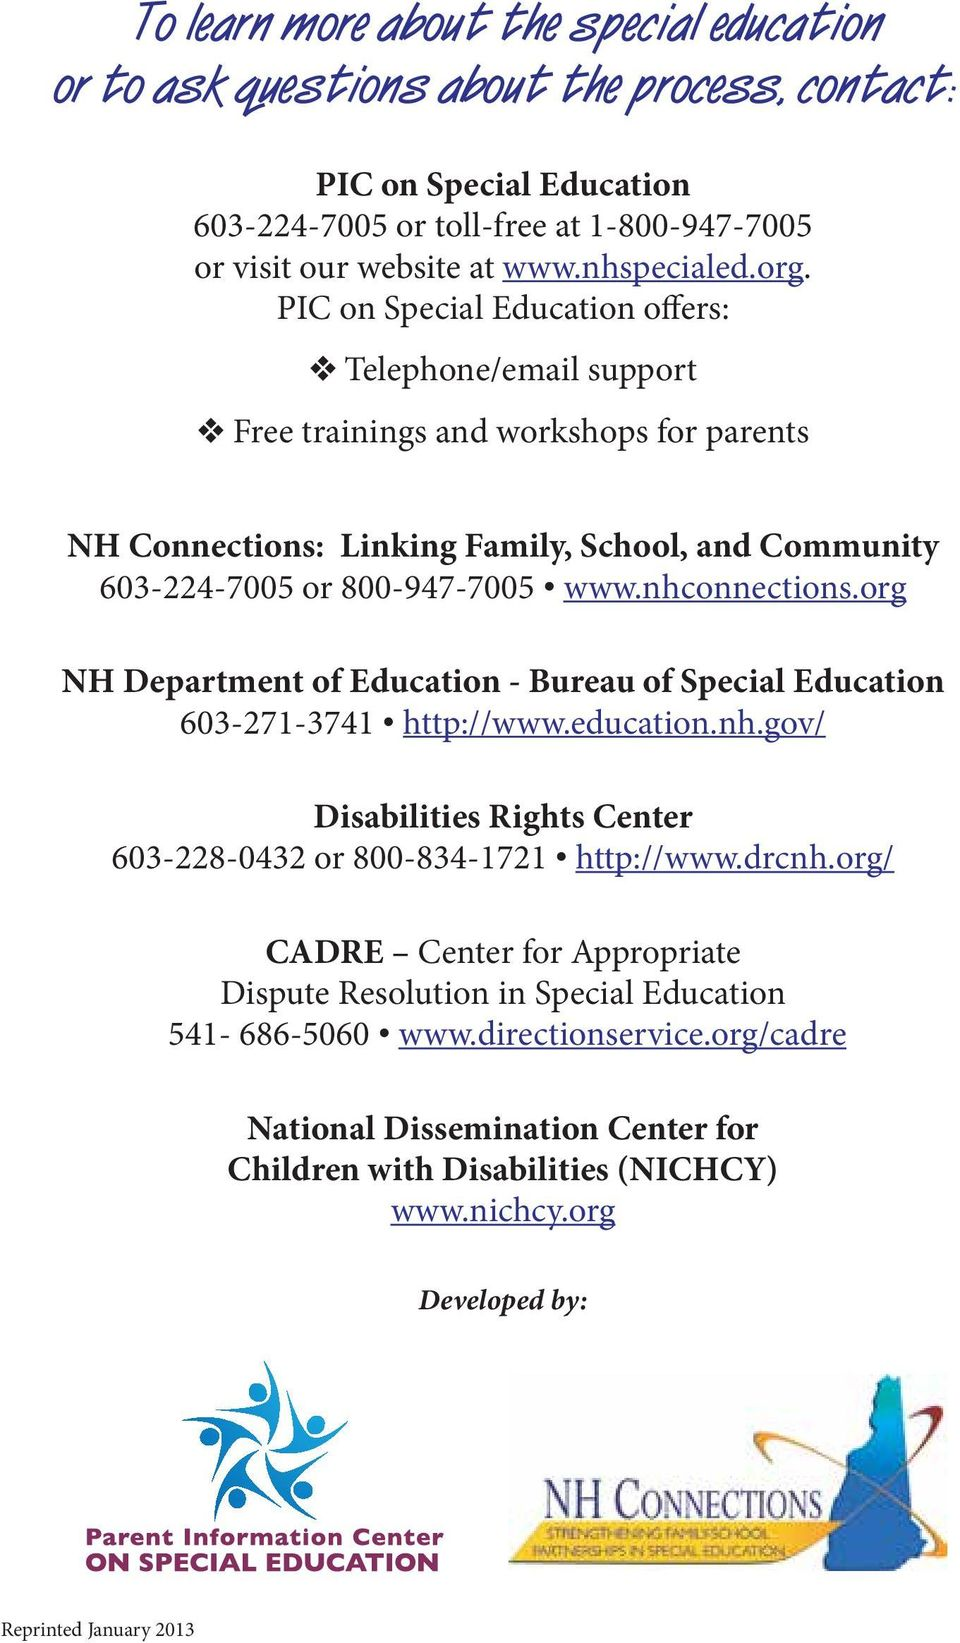 nhconnections.org NH Department of Education - Bureau of Special Education 603-271-3741 http://www.education.nh.gov/ Disabilities Rights Center 603-228-0432 or 800-834-1721 http://www.drcnh.